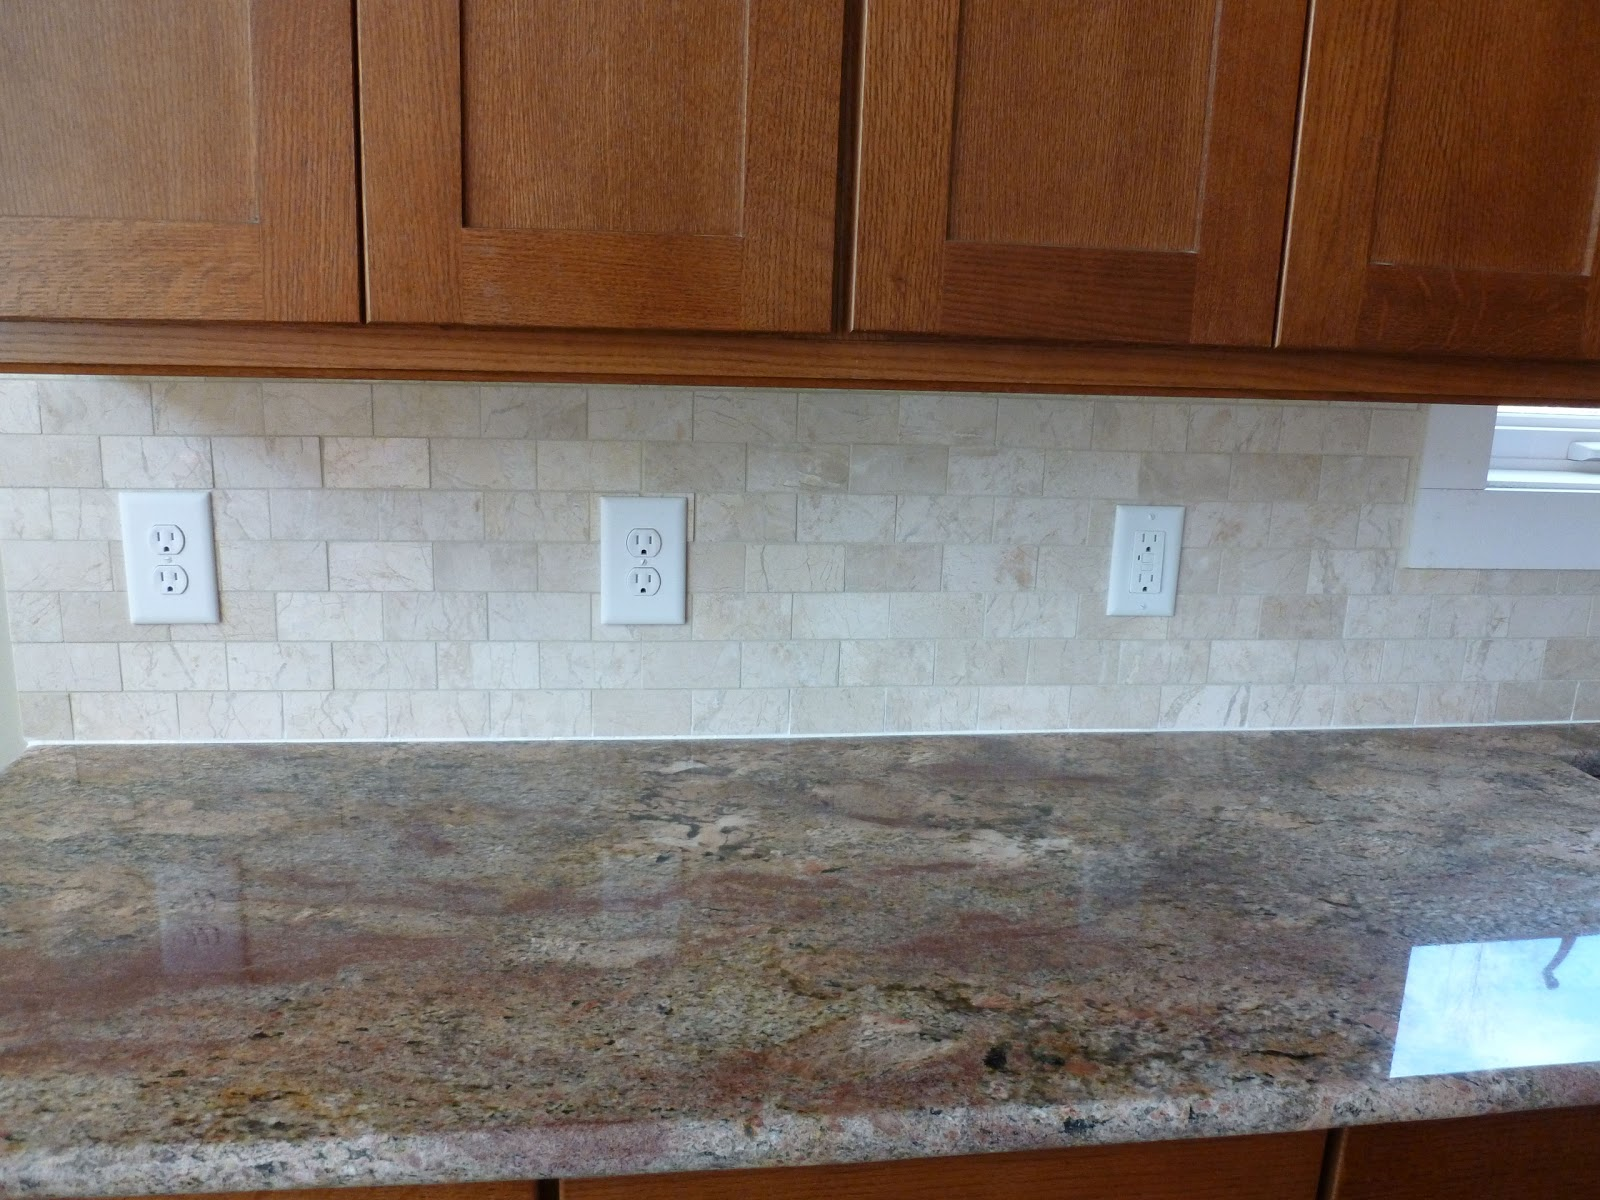 Bob and flora 39 s new house - Kitchen backsplash tile ...